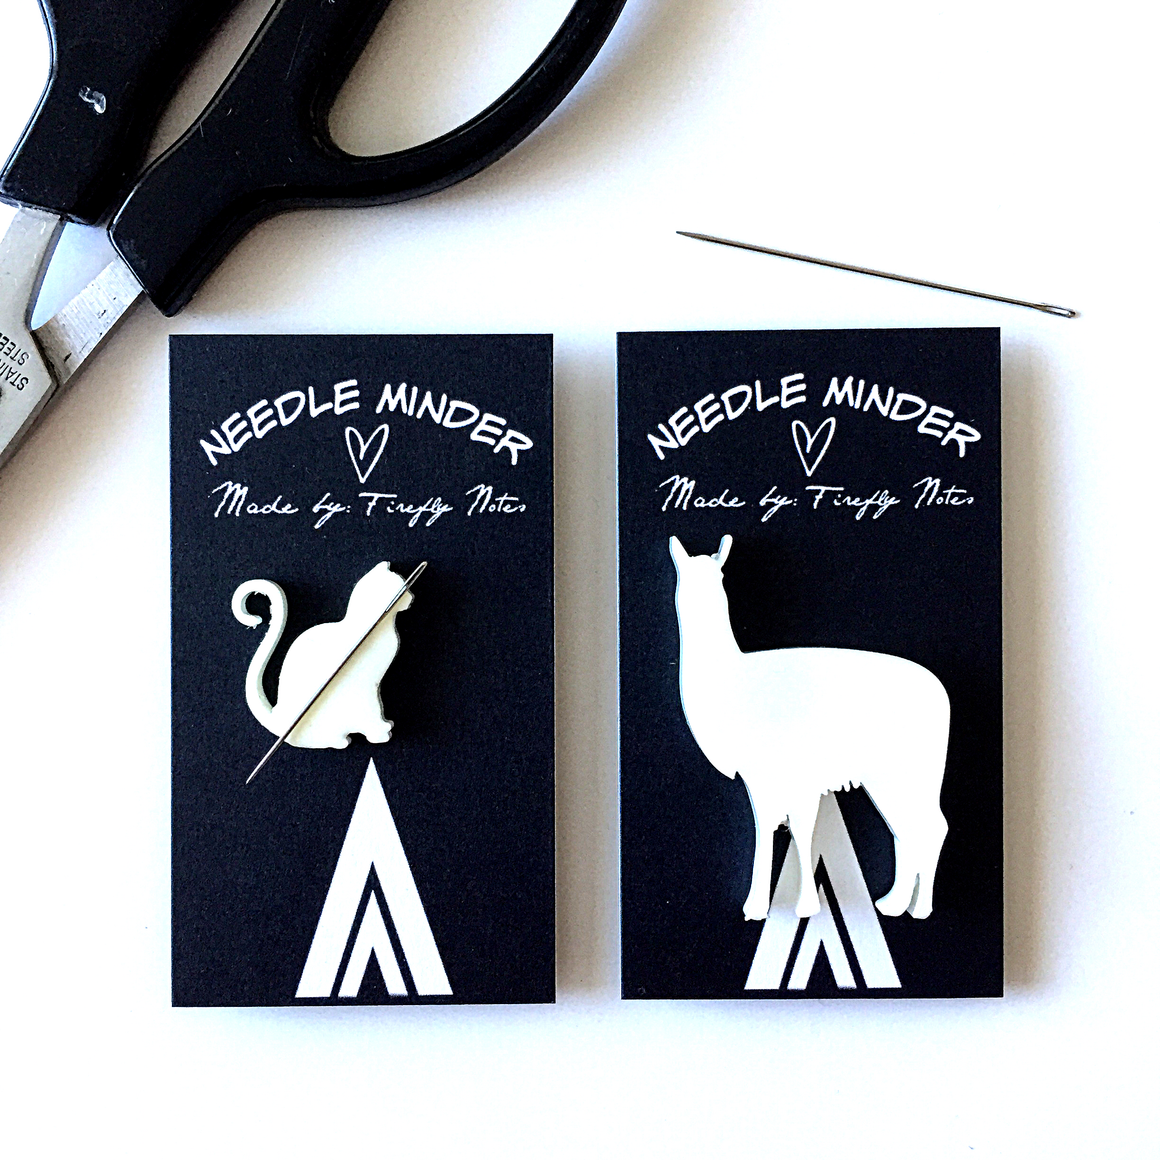 Cat or Llama resin Needle minder